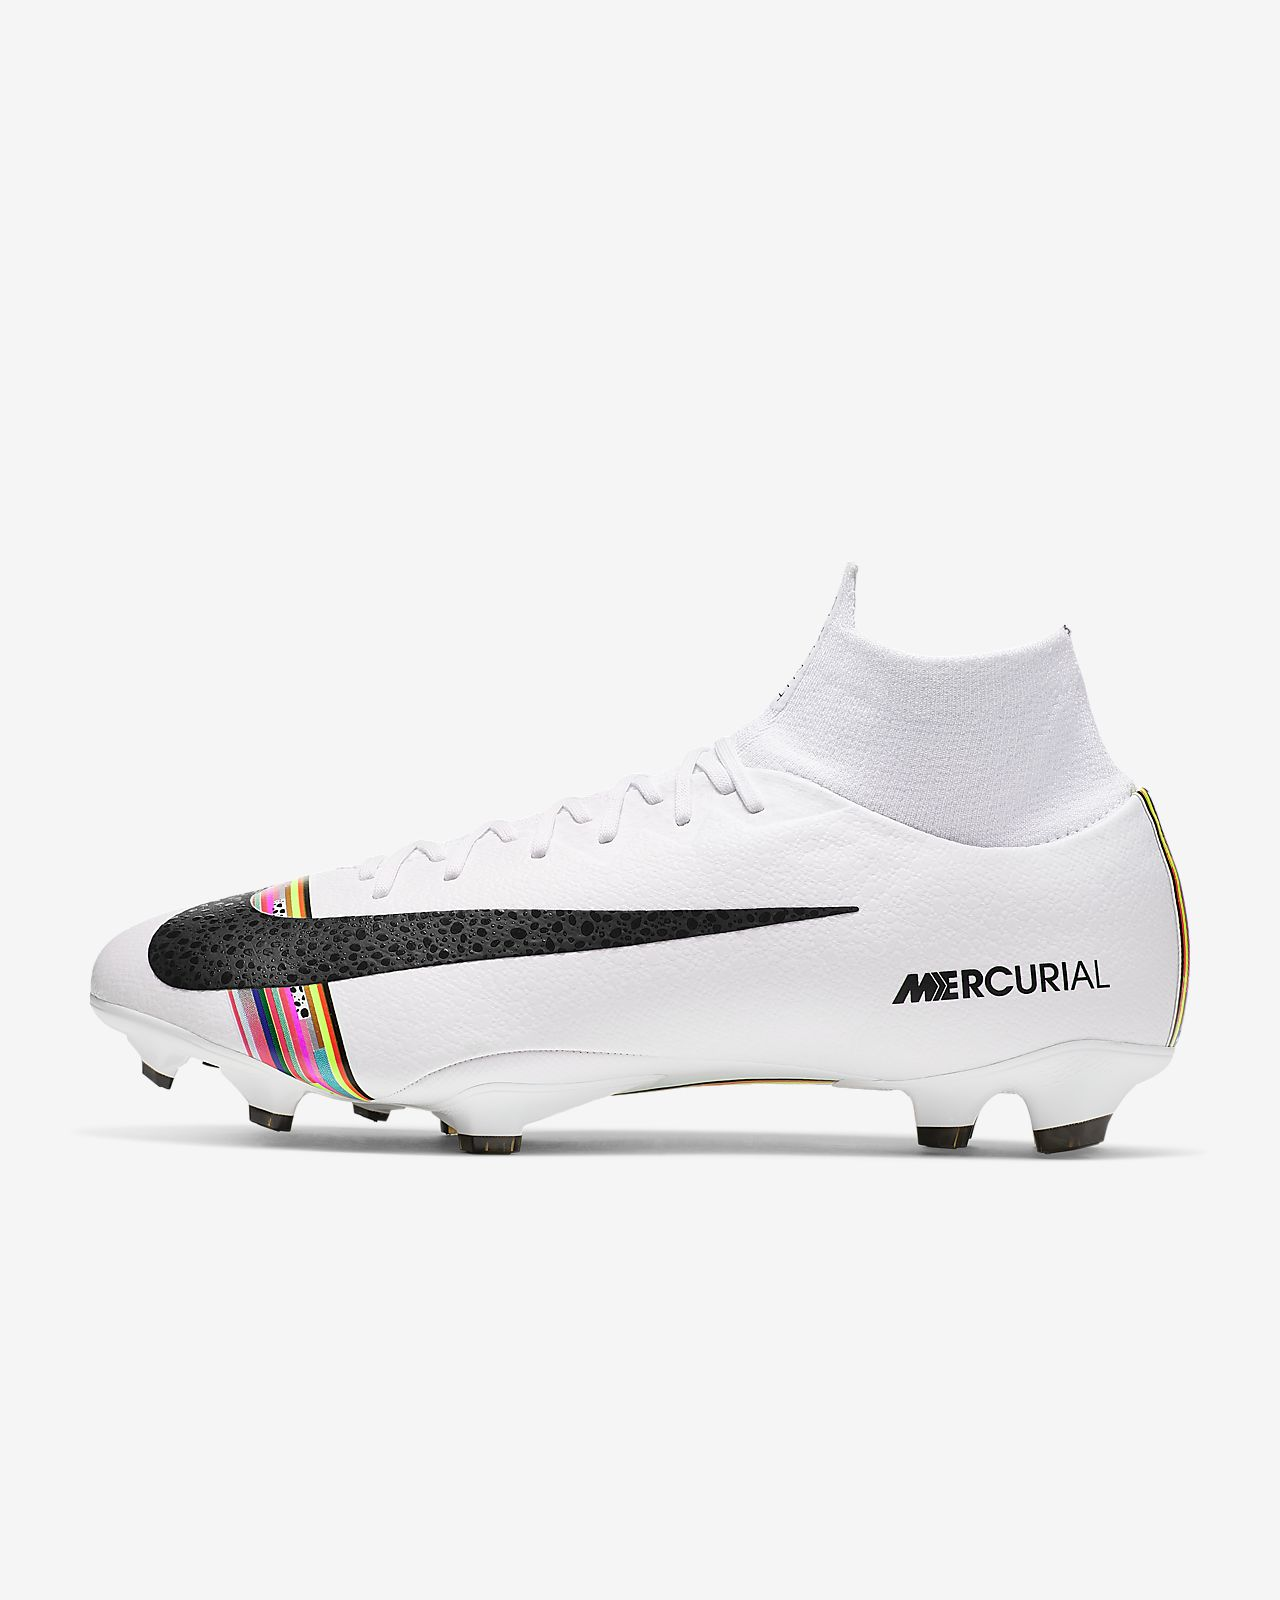 reputable site dd026 f4e8a ... Nike Superfly 6 Pro LVL UP FG Firm-Ground Football Boot